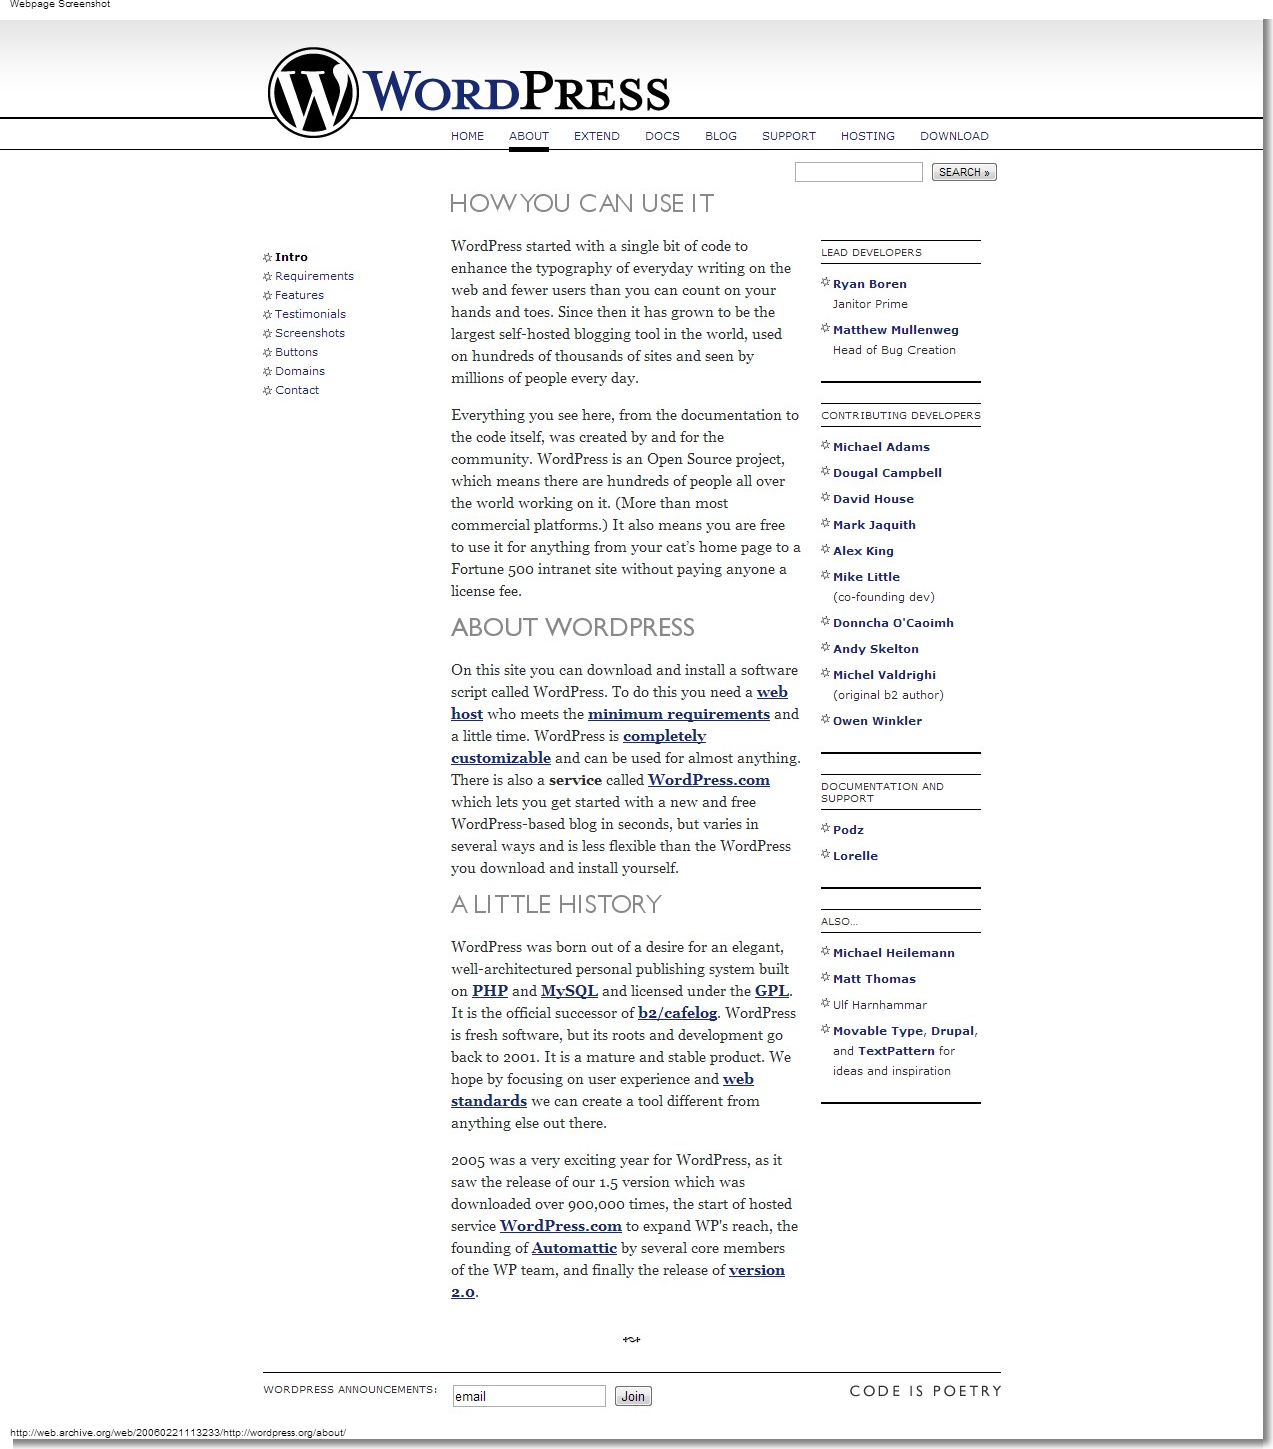 February 21, 2006 - WordPress - About